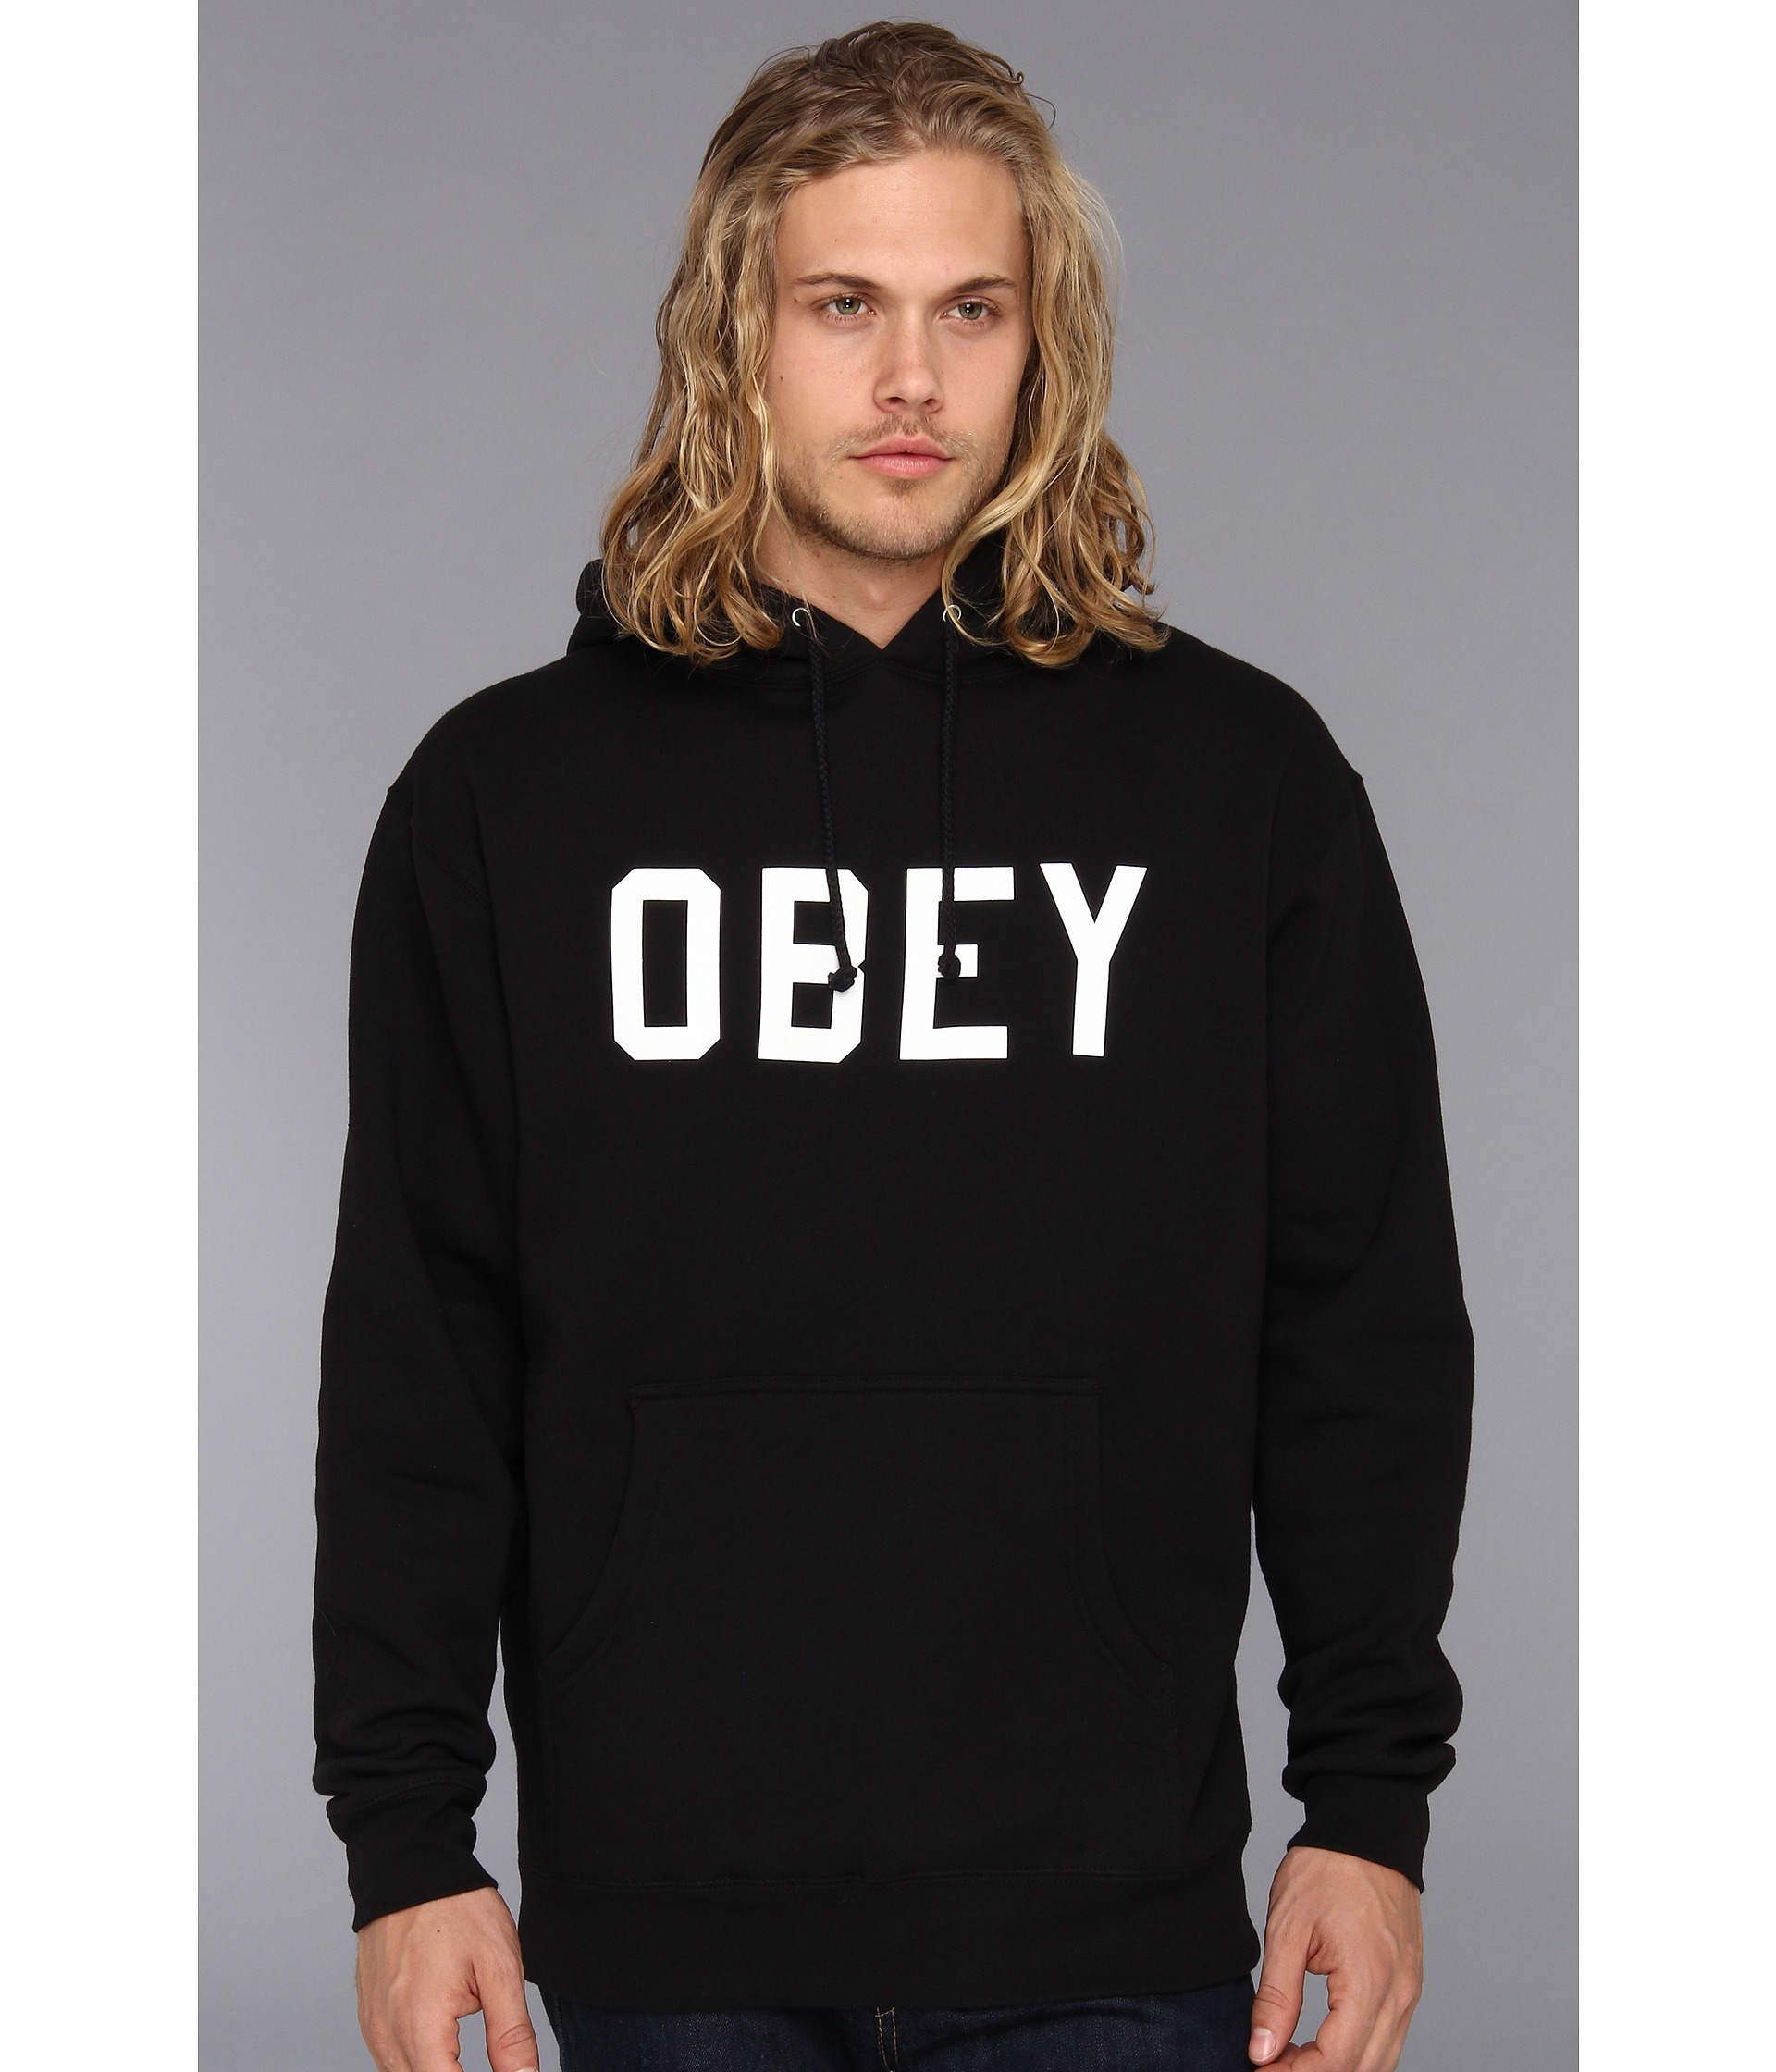 obey collegiate obey pullover hood sweatshirt clothing shipped free at zappos. Black Bedroom Furniture Sets. Home Design Ideas